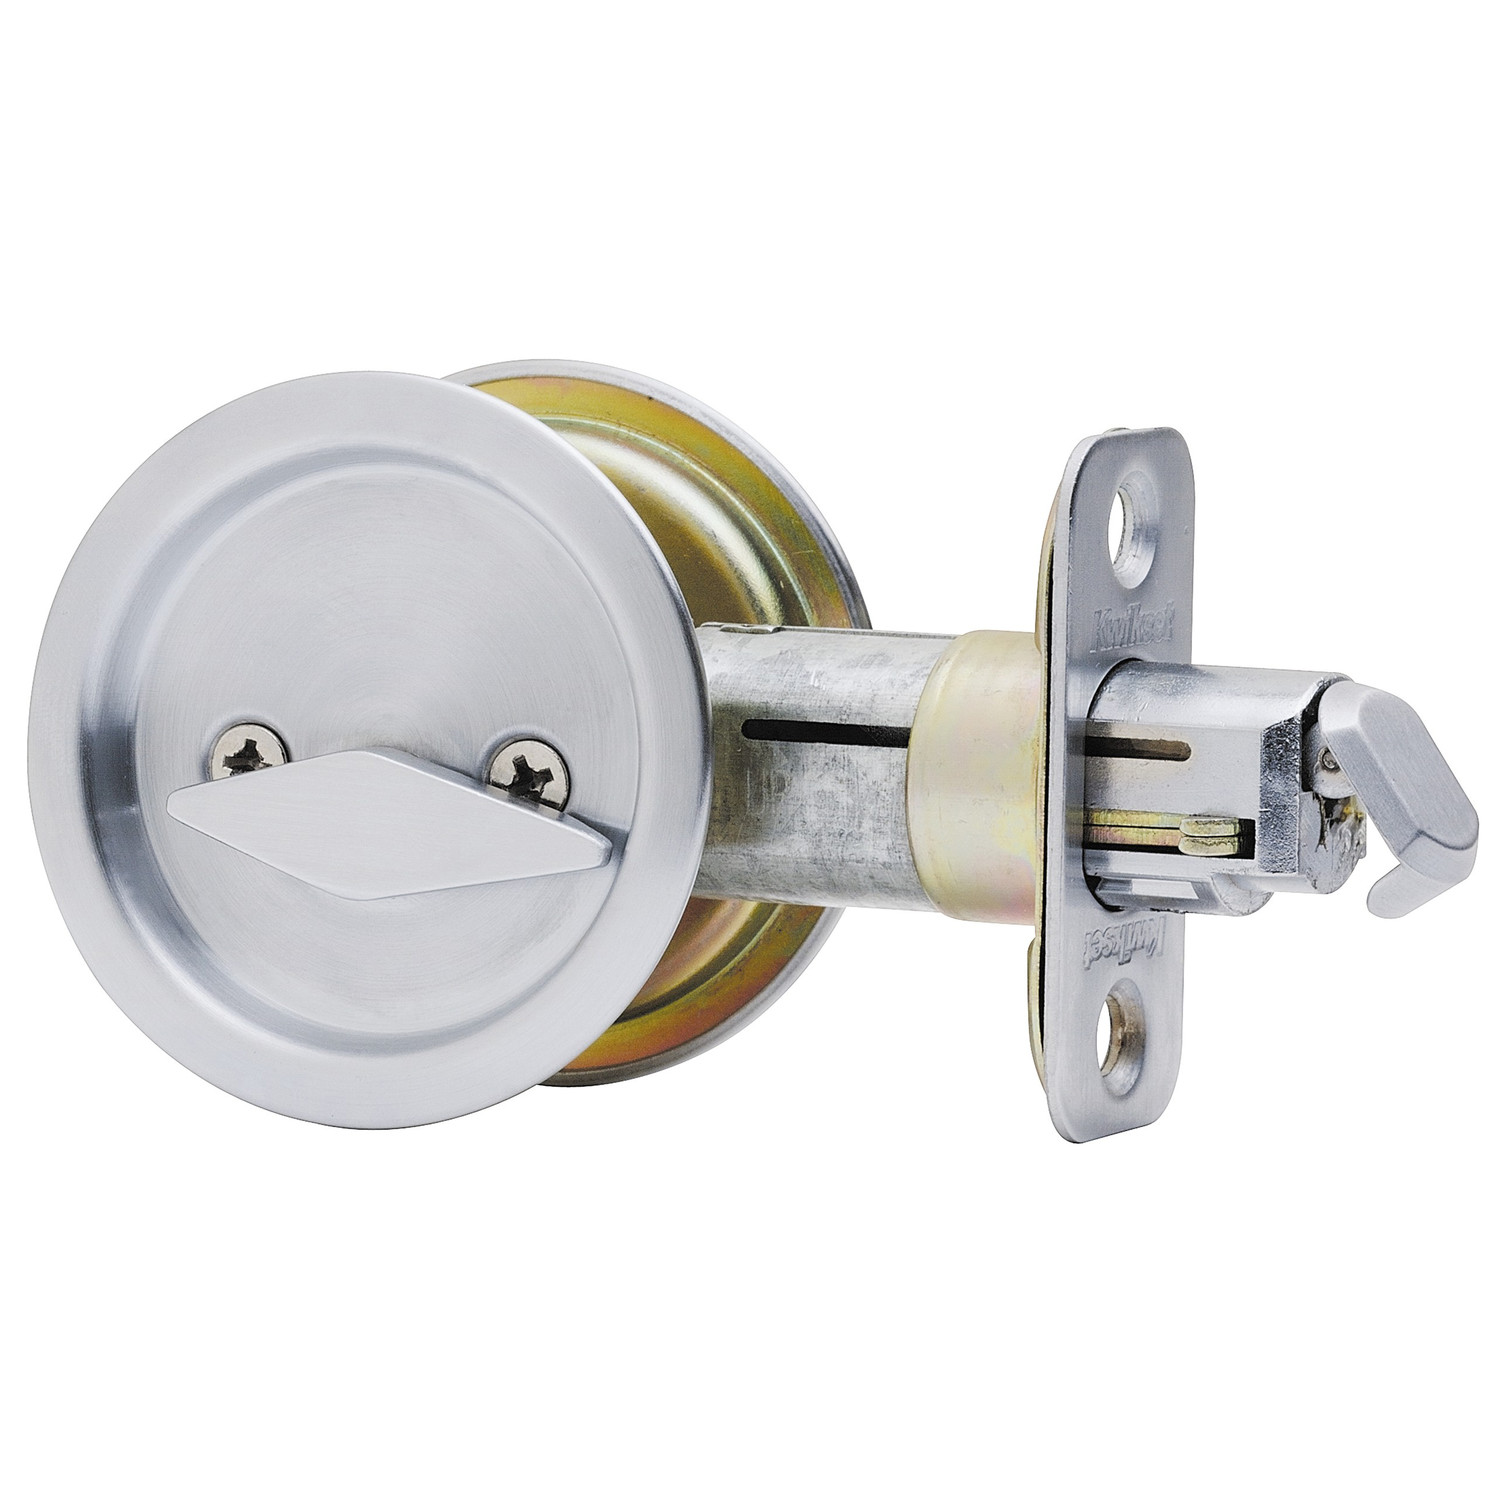 Security Solutions For Home Tinder Locksmith